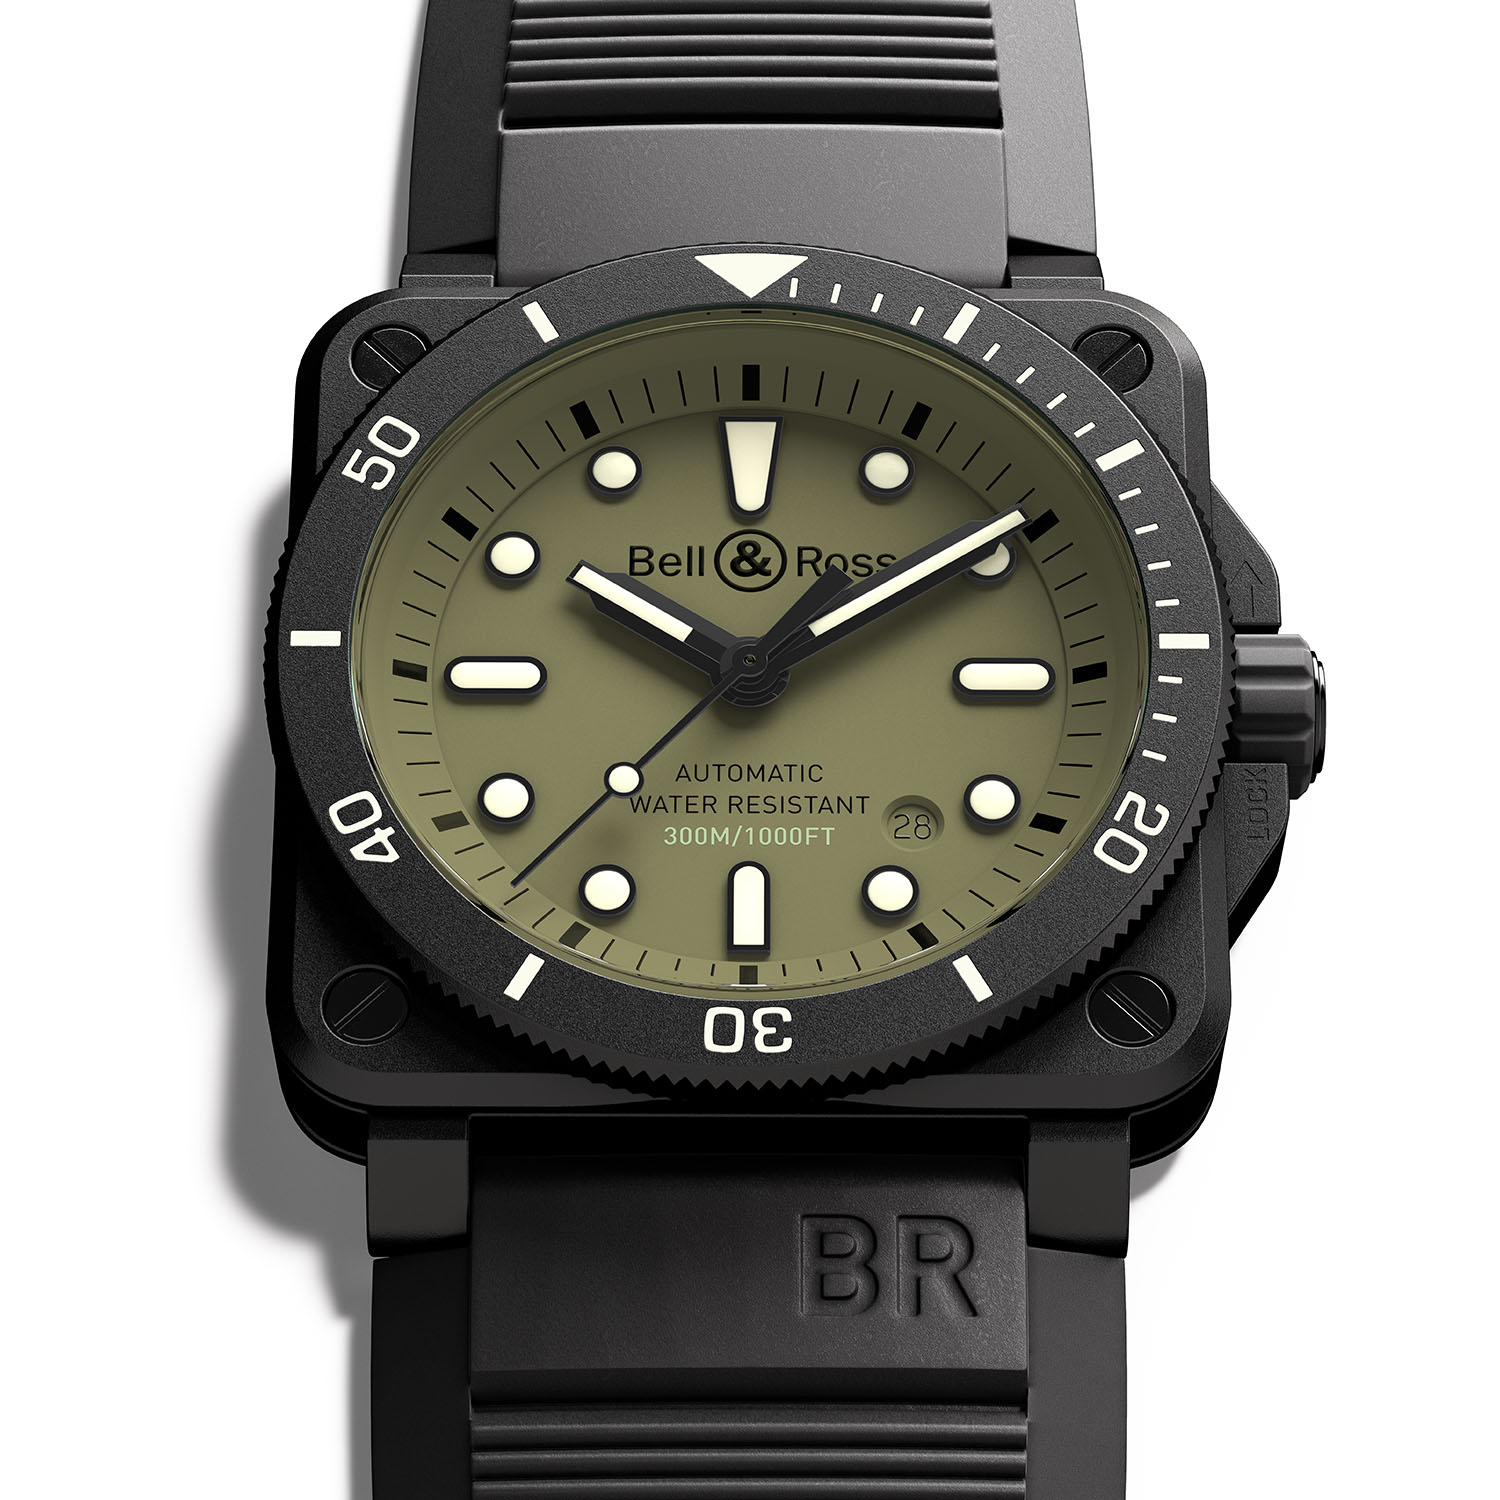 Bell & Ross BR 03 Diver Military